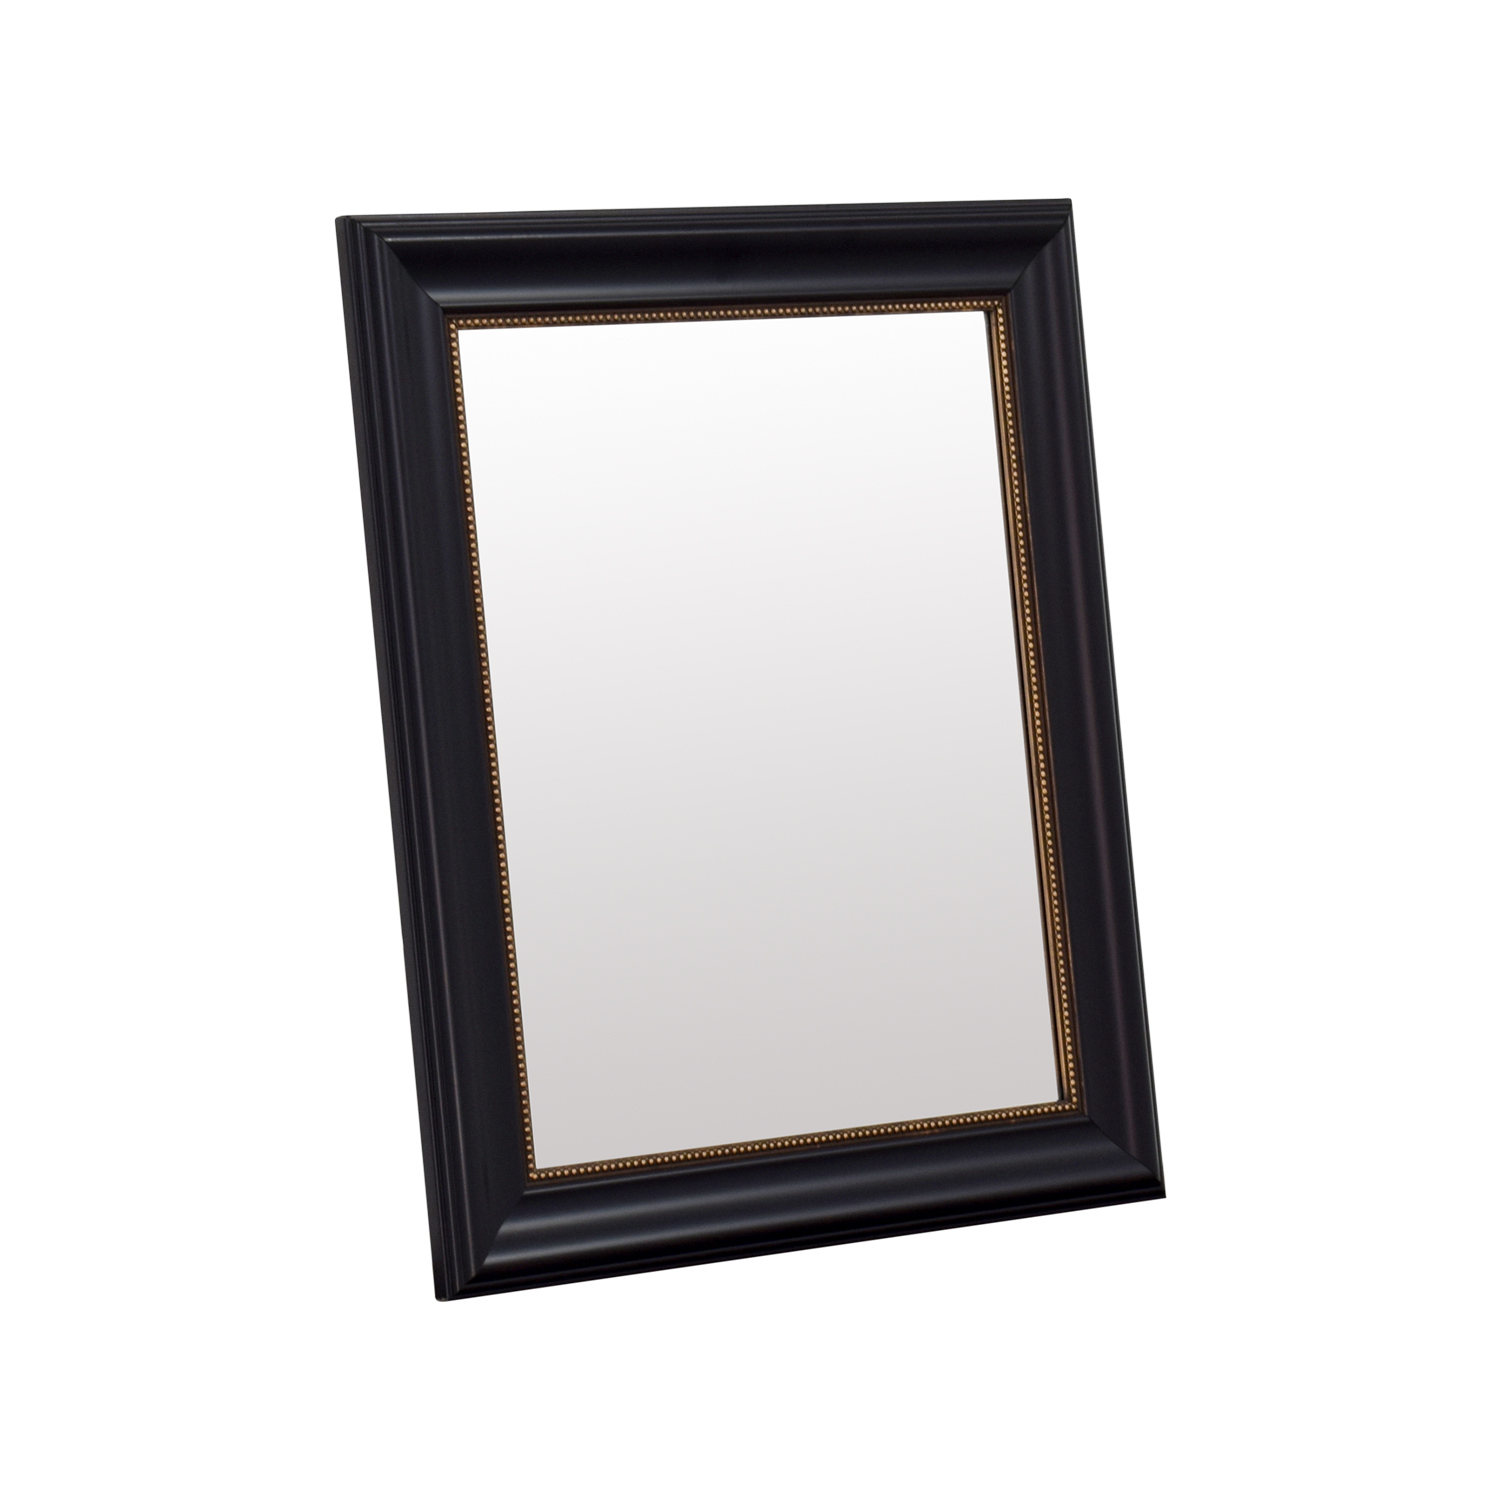 HomeGoods HomeGoods Black and Gold Beveled Mirror Black